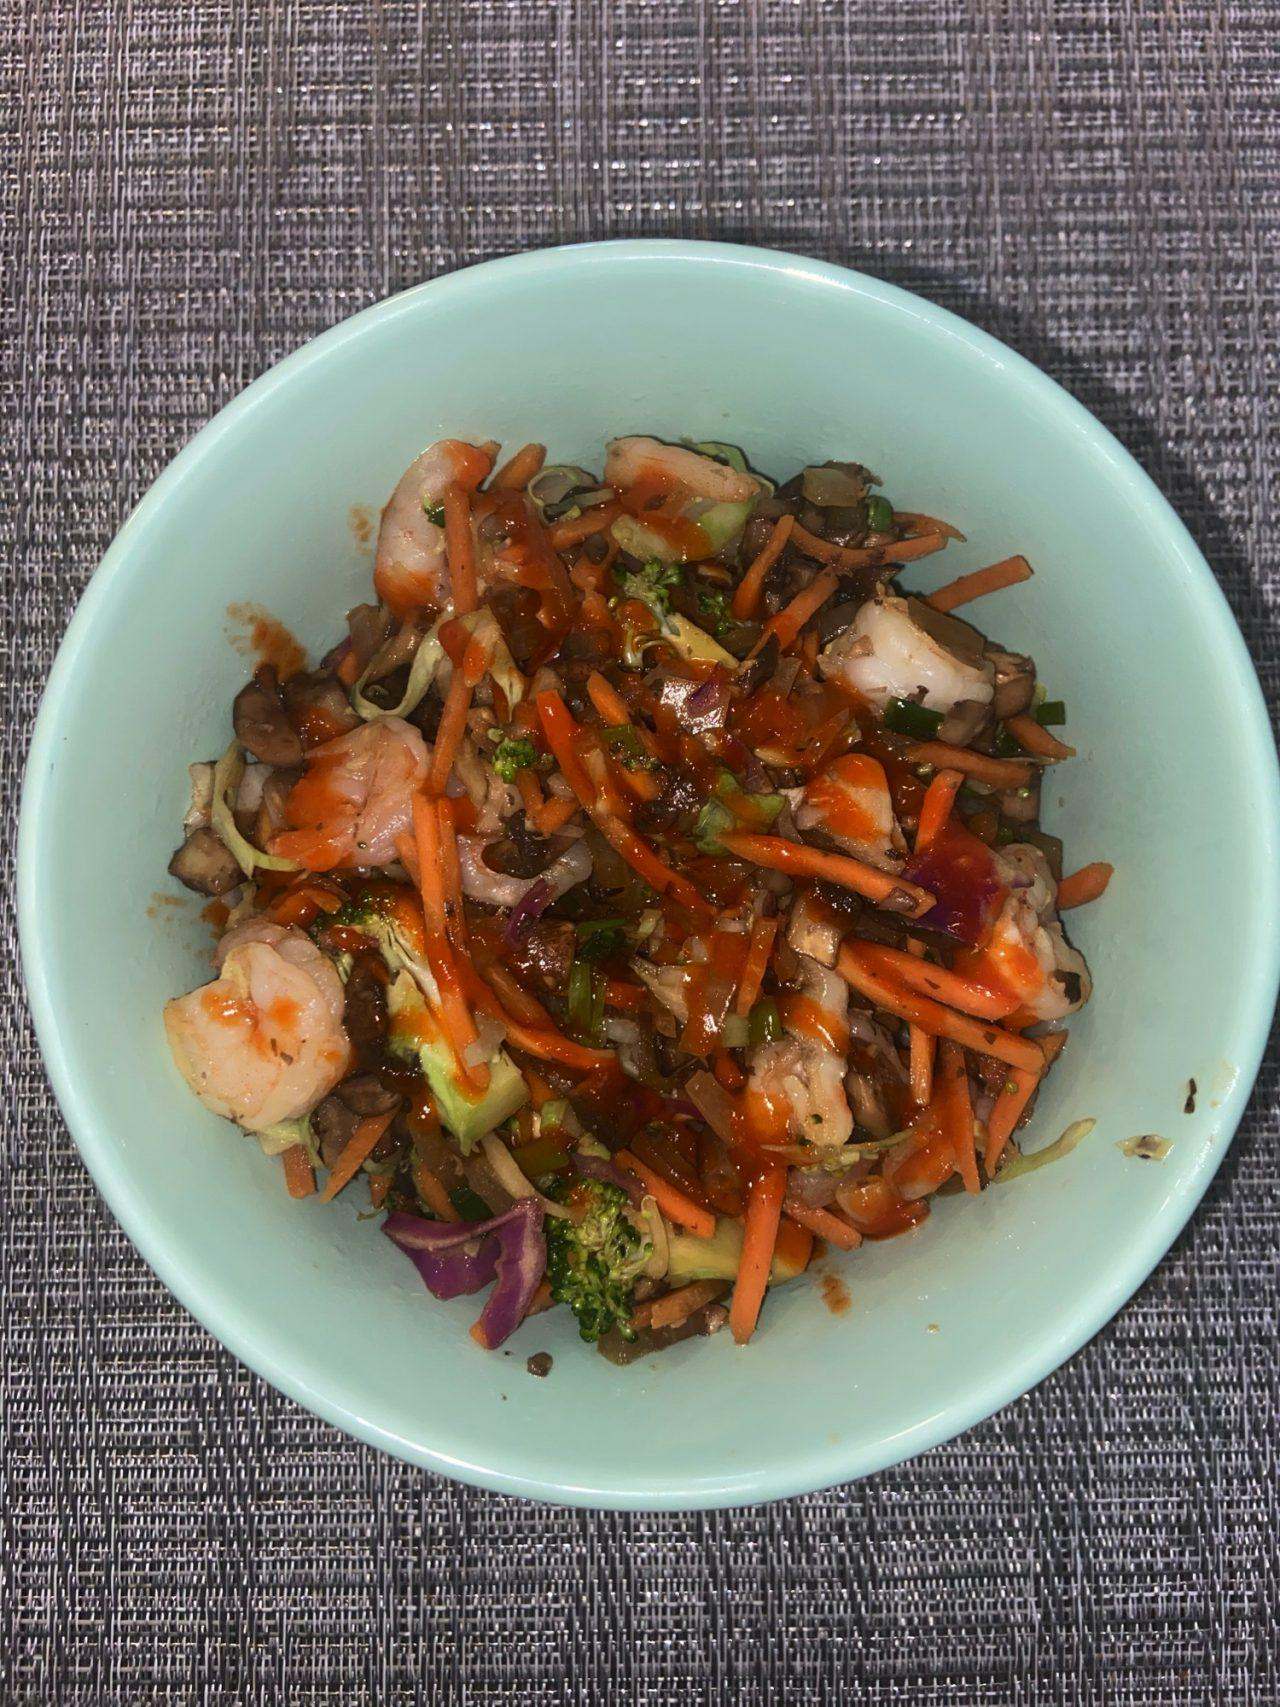 Shrimp stir fry recipe to cook in a pinch